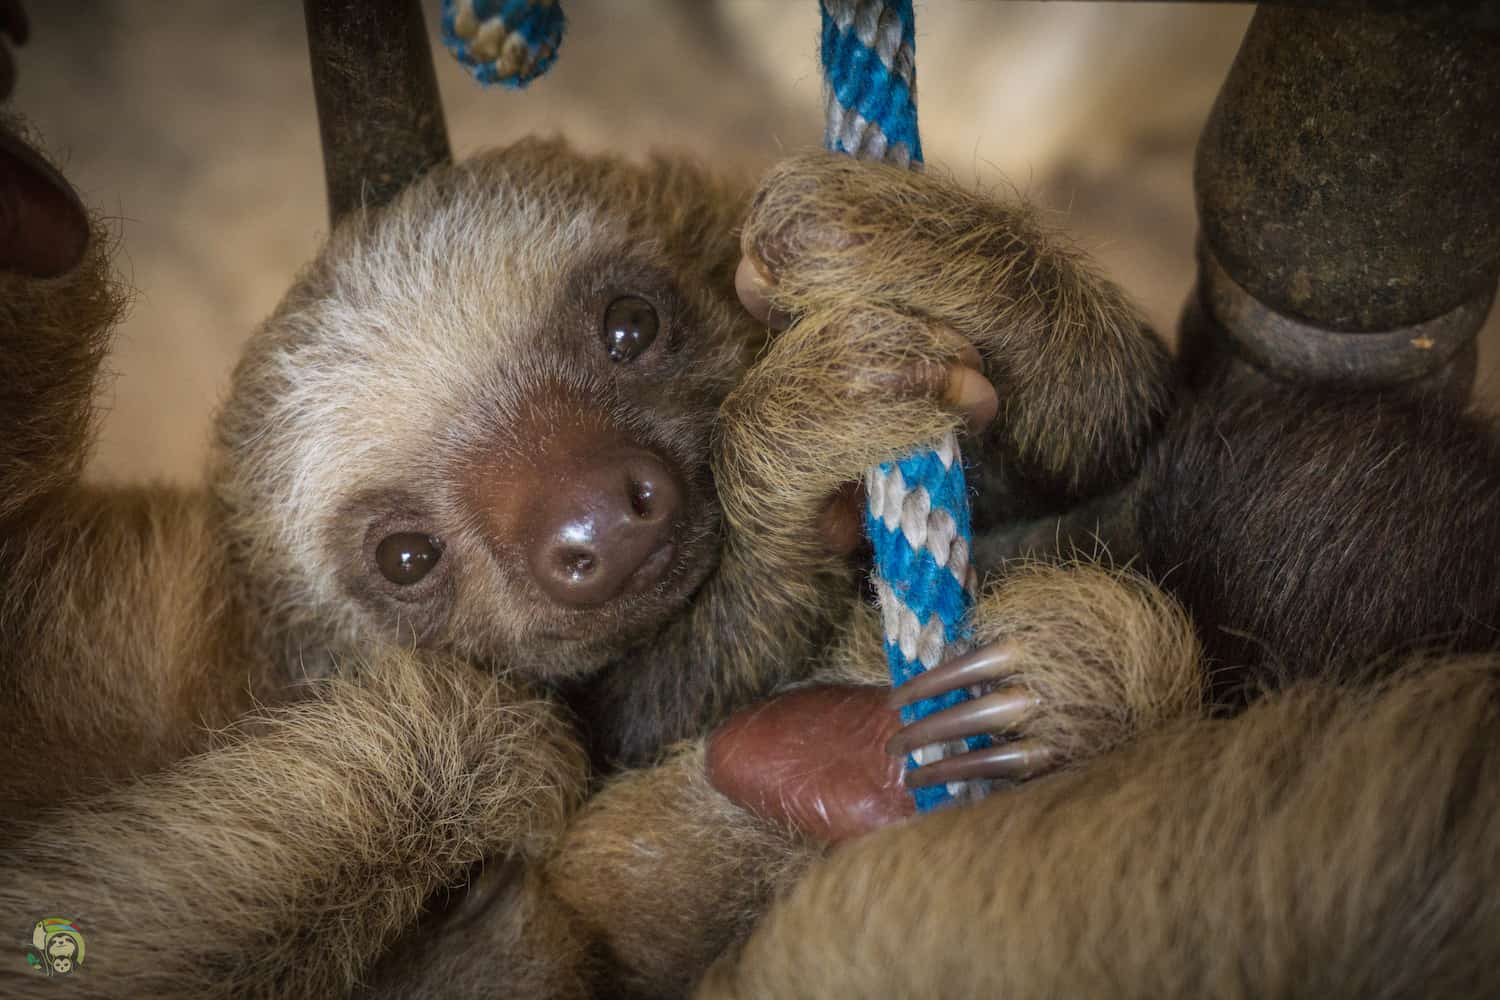 Arya, a two-fingered sloth, at Toucan Rescue Ranch Costa Rica.